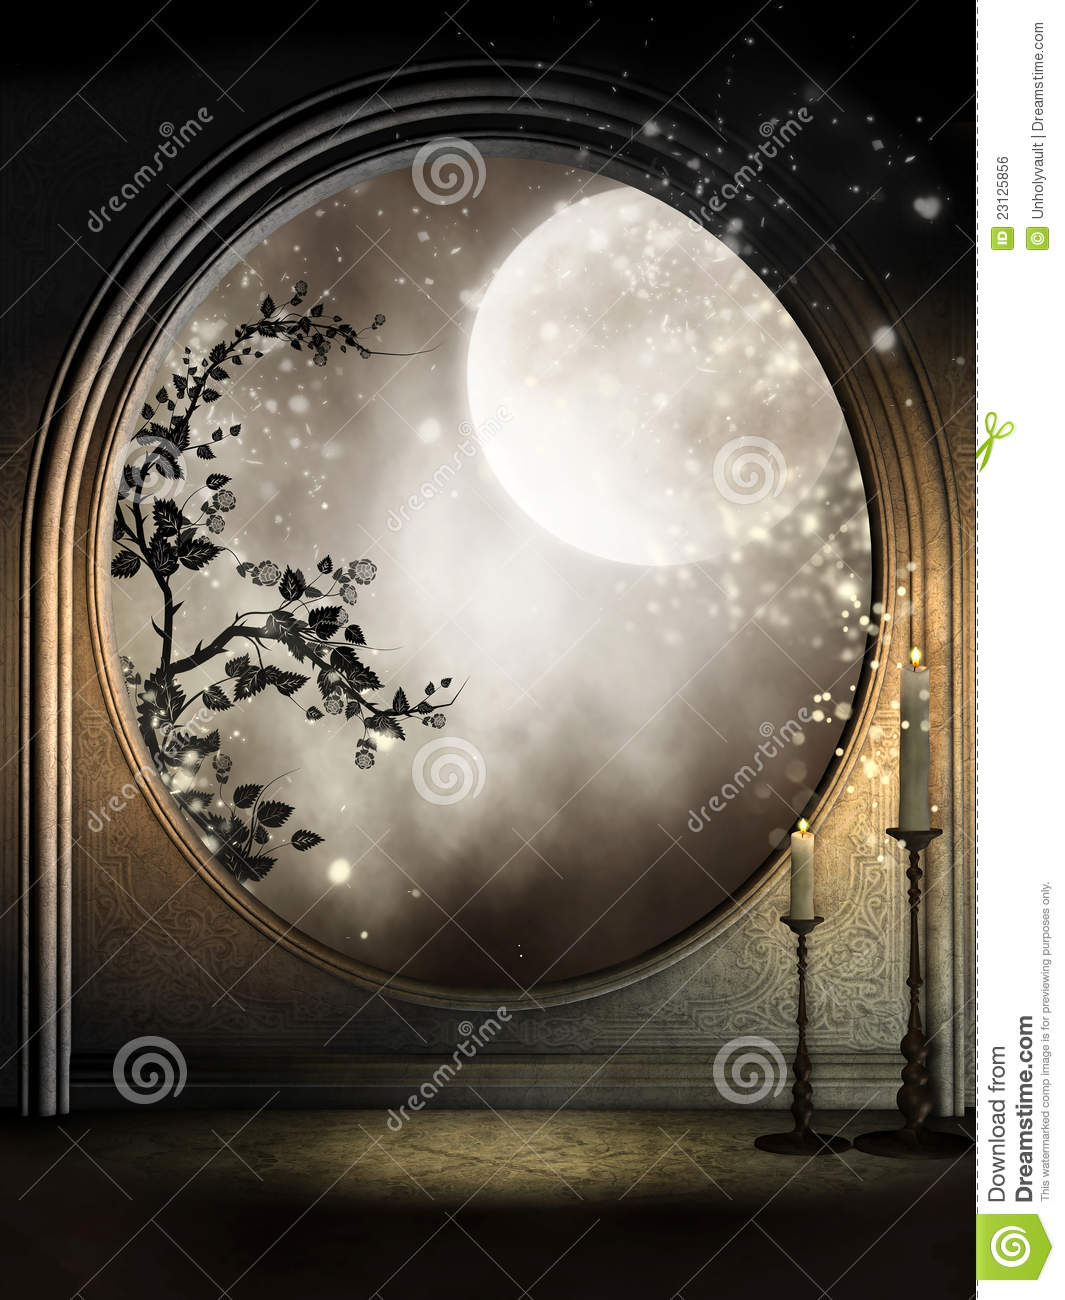 Fantasy Window With Vines Royalty Free Stock Image Image 23125856